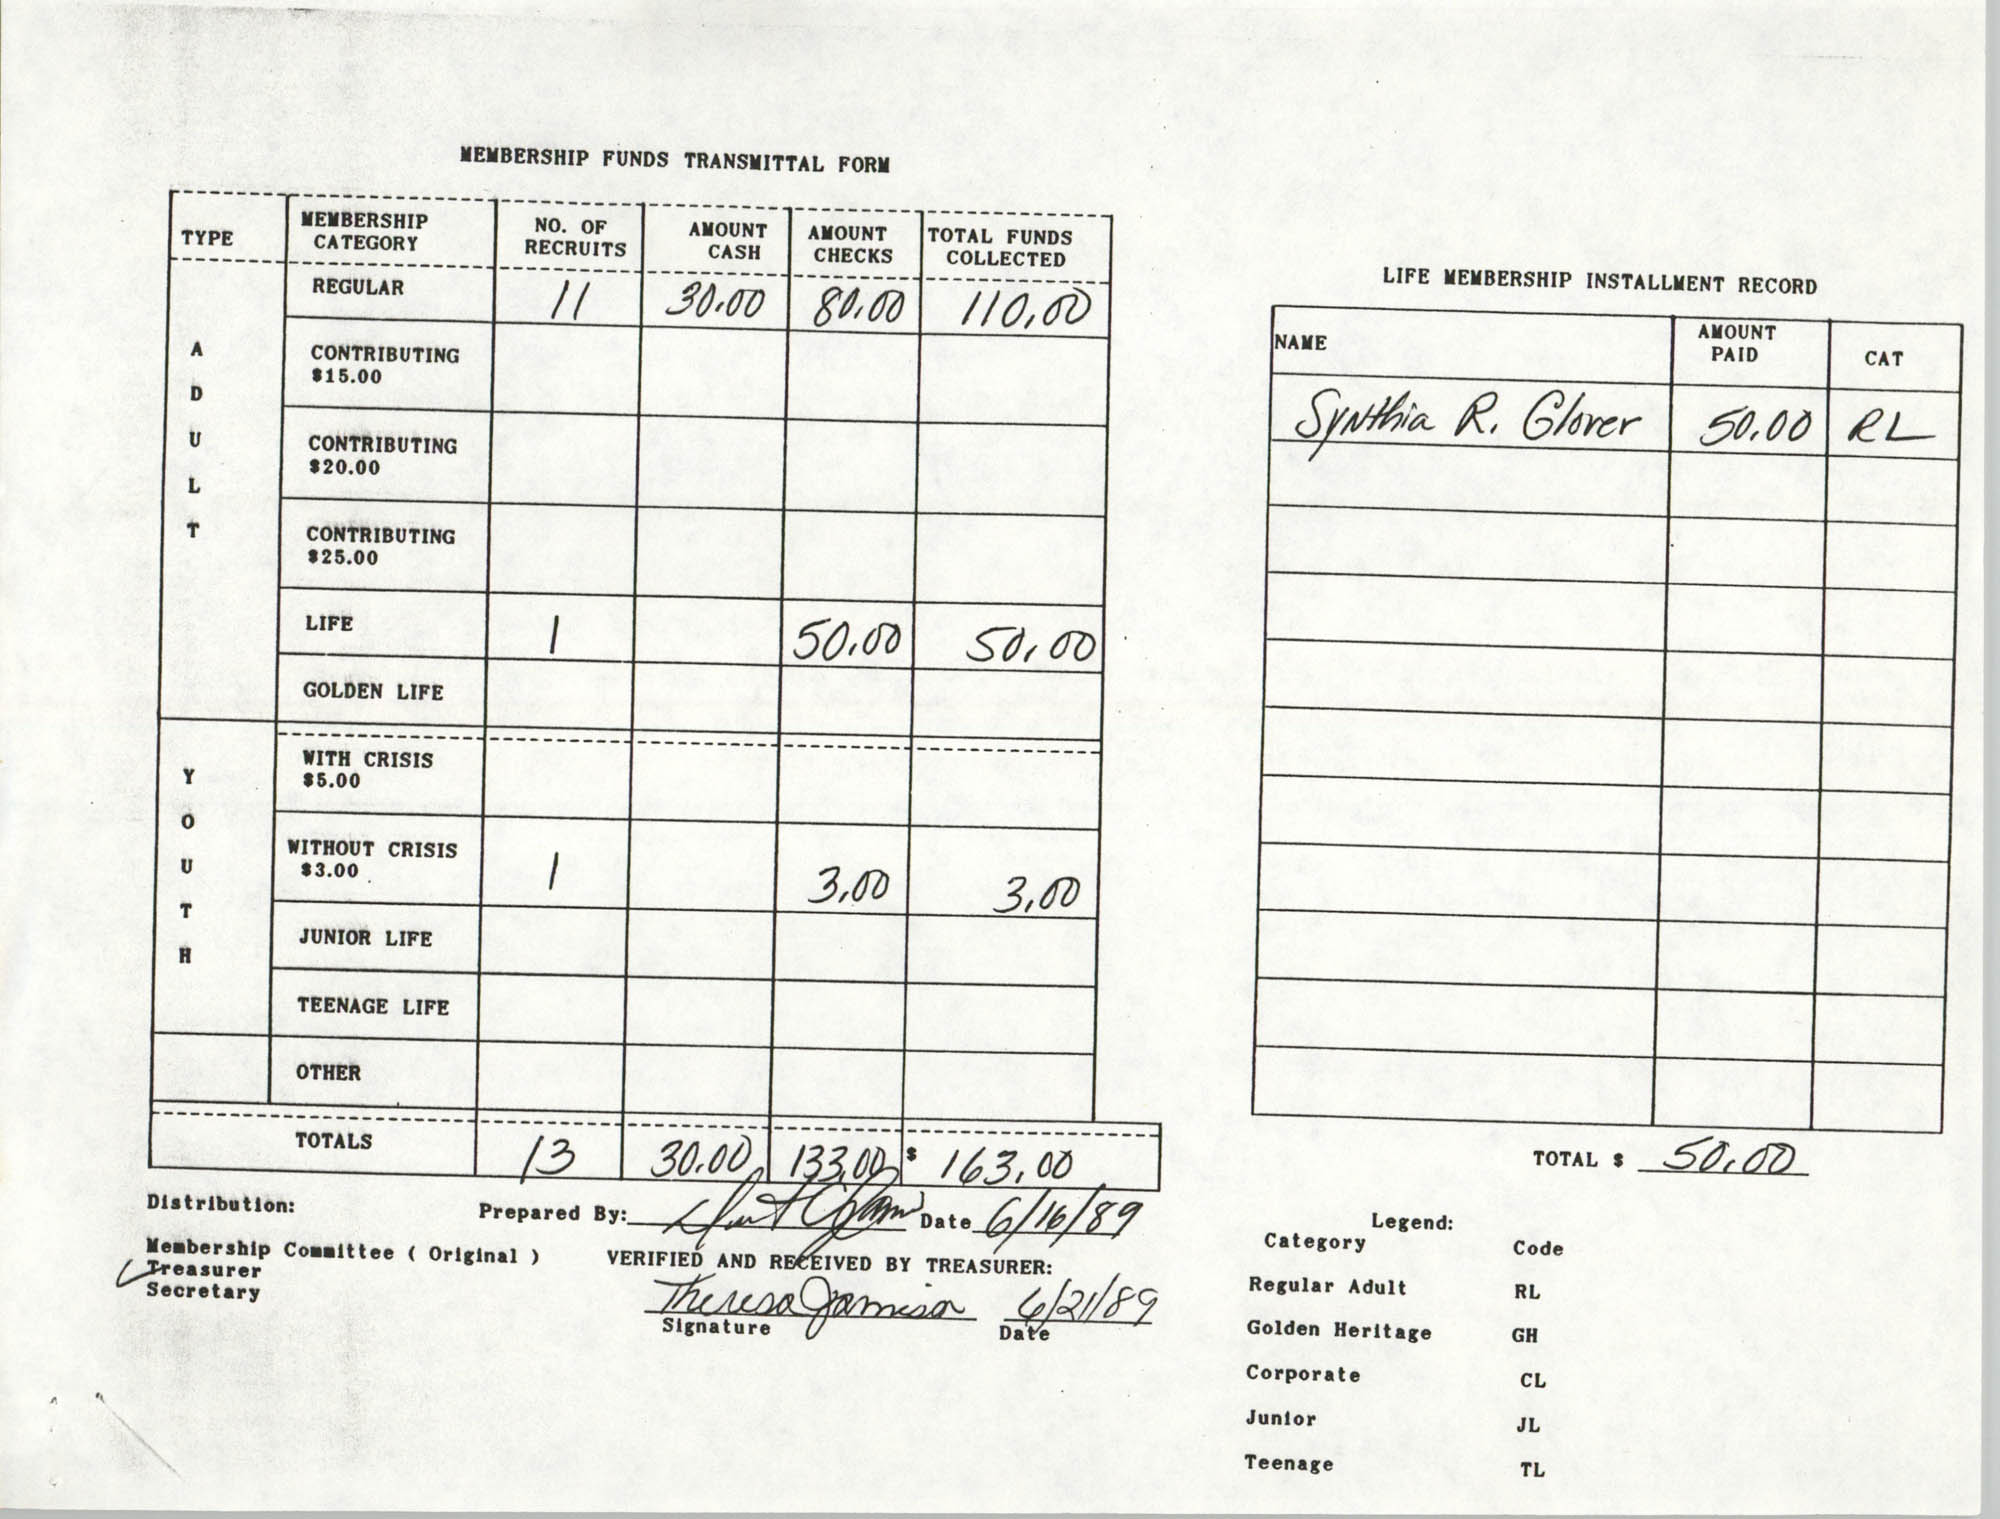 Charleston Branch of the NAACP Funds Transmittal Forms, June 1989, Page 2